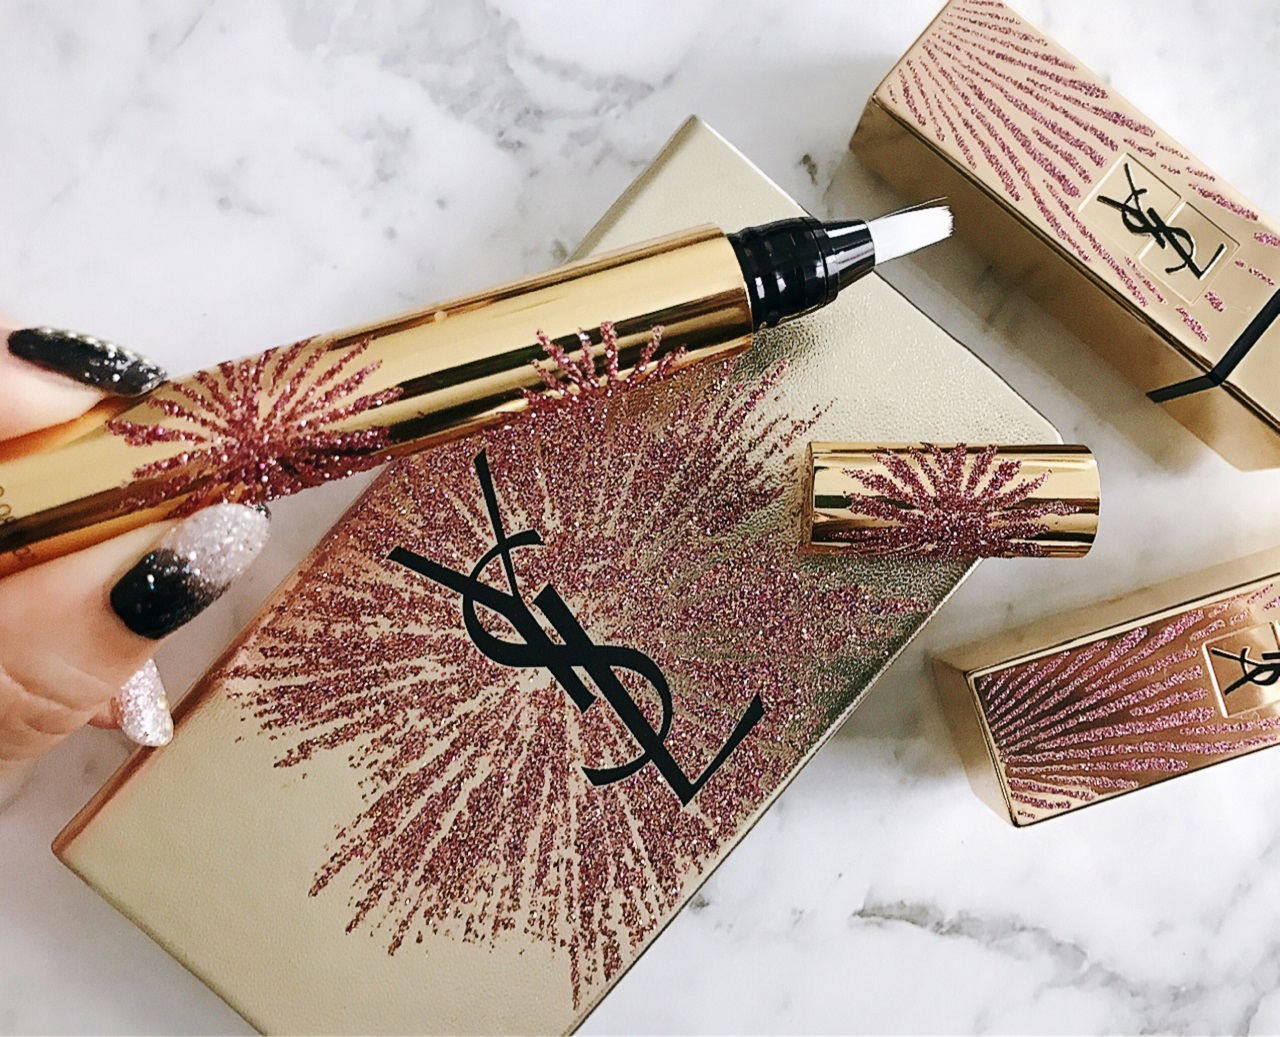 YSL Touche Eclat Pen for Dazzling Lights Collection